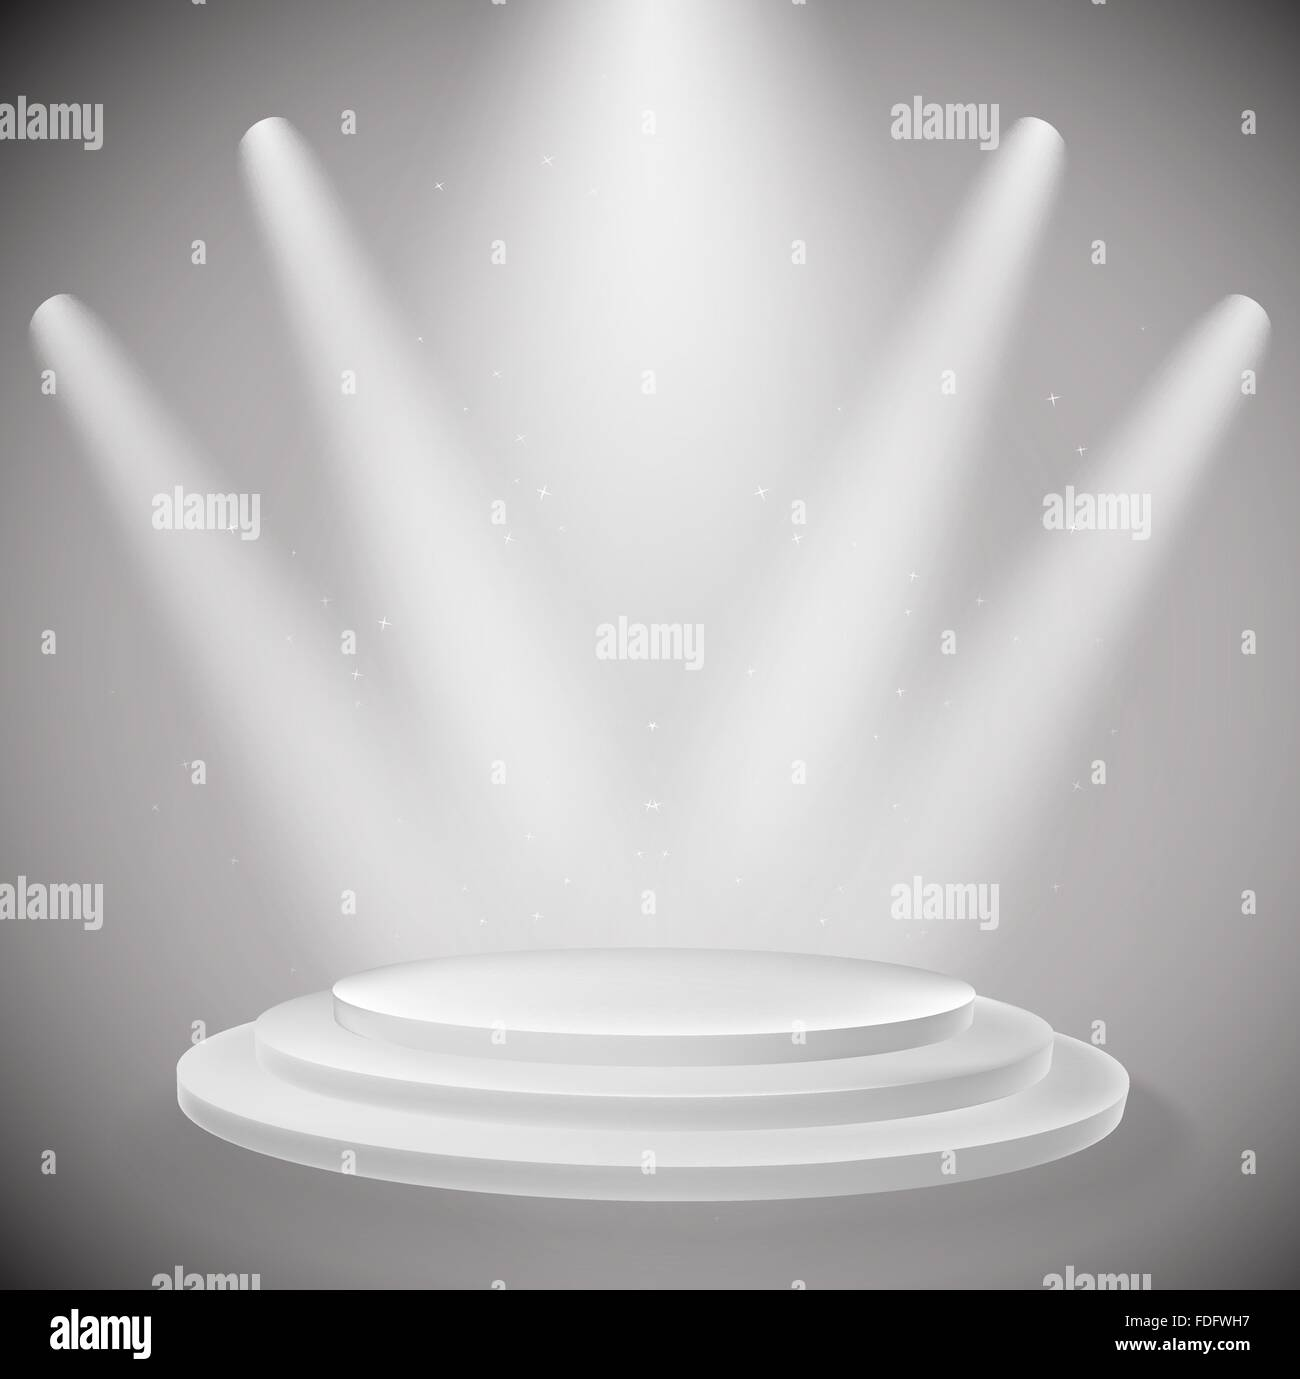 white podium and spot lights background. vector design template - Stock Vector